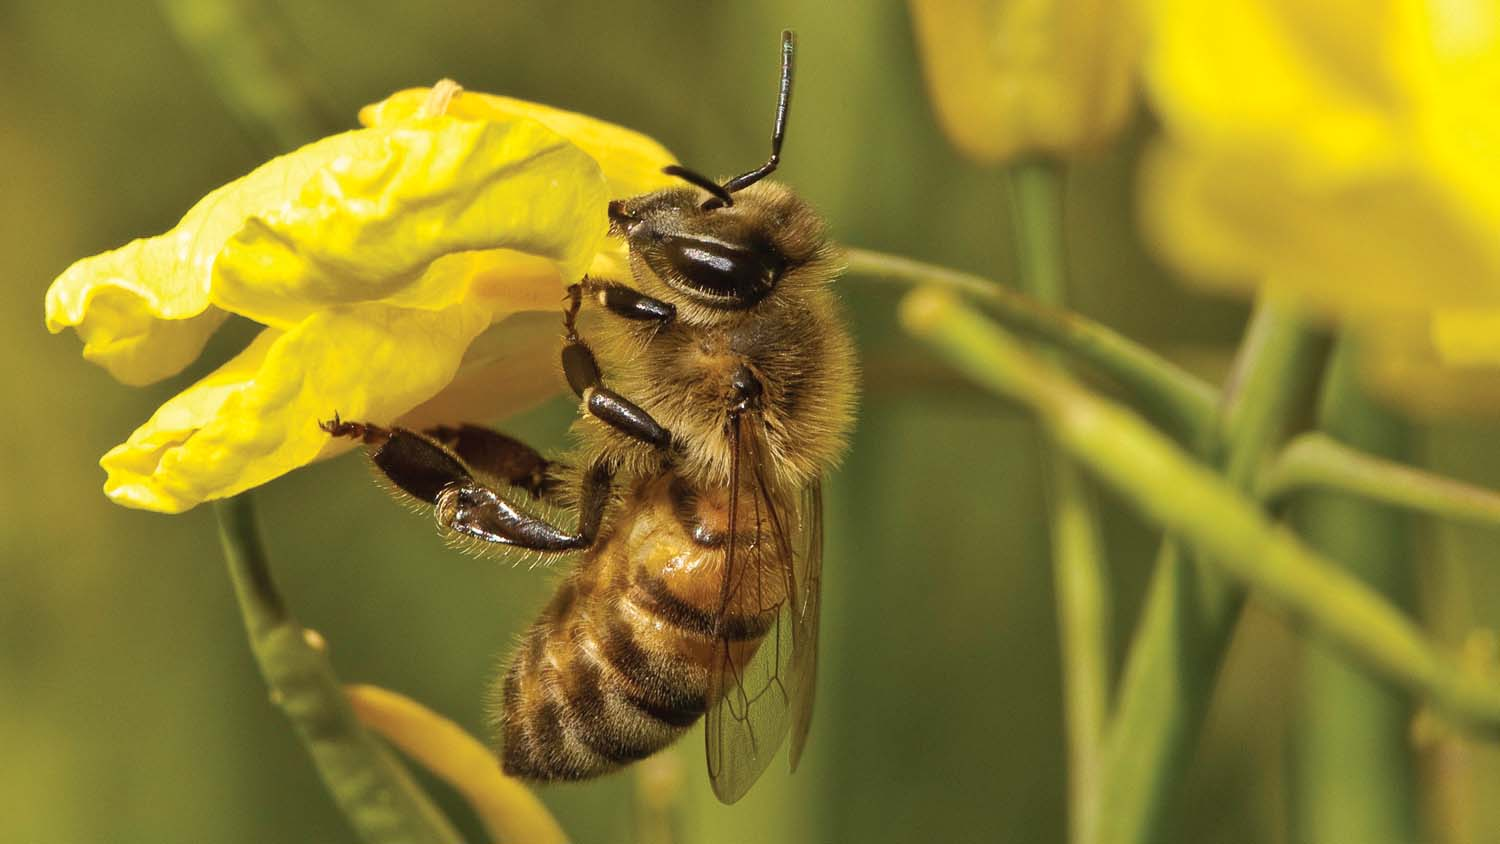 Neonics risk to bees confirmed says EFSA